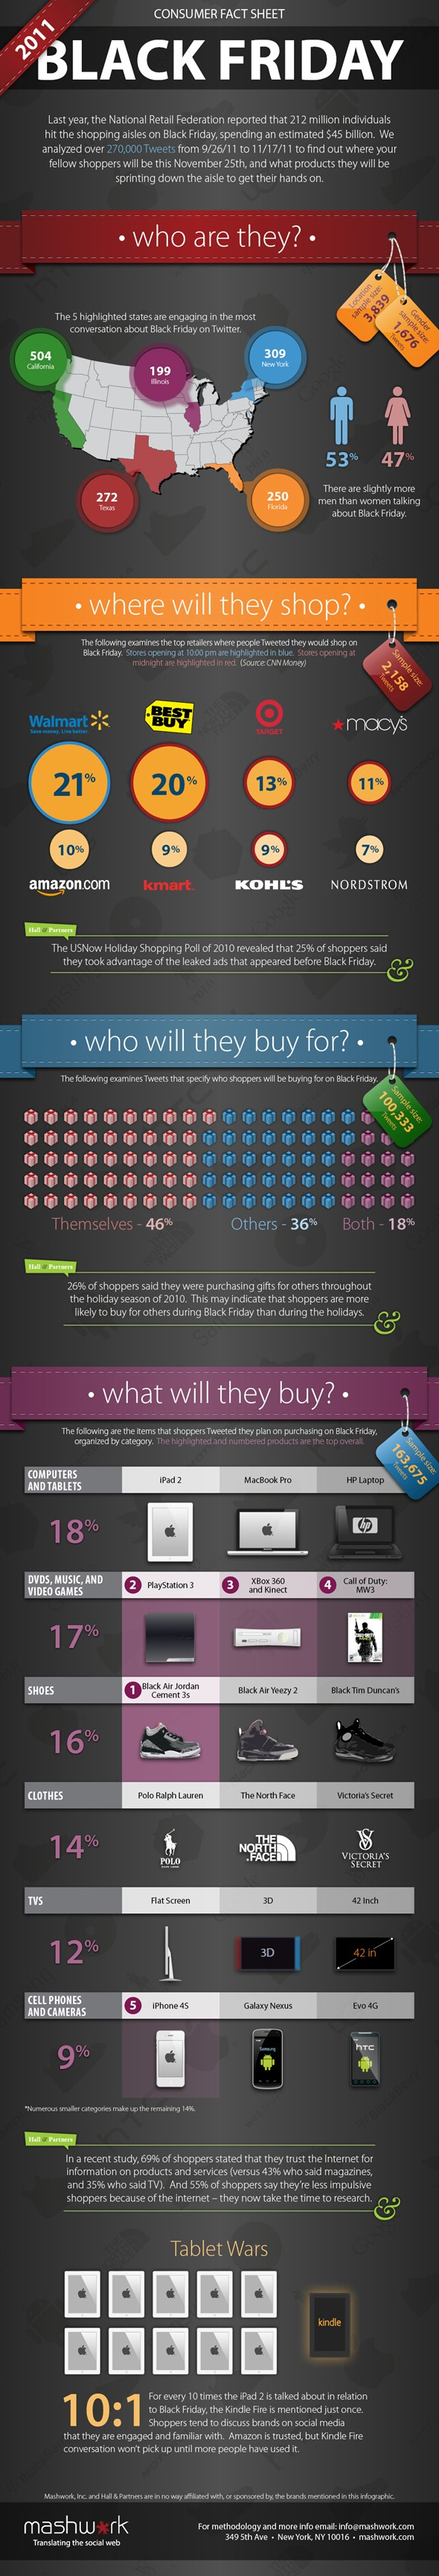 twitter-black-friday-infographic-972